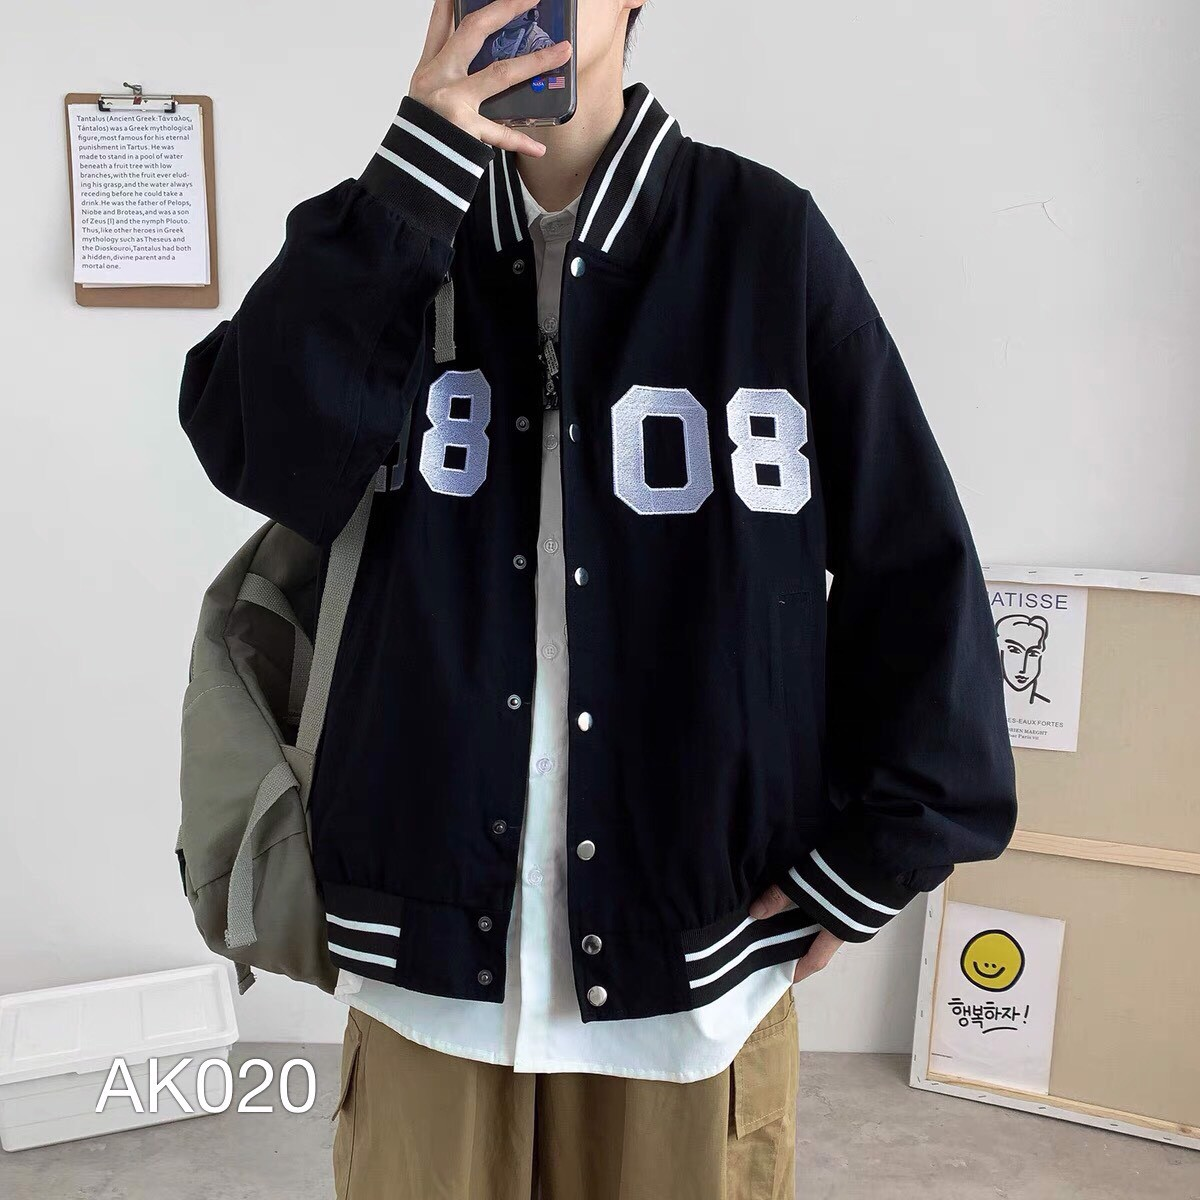 AK020 - JACKET BOMBER KAKI IN 08